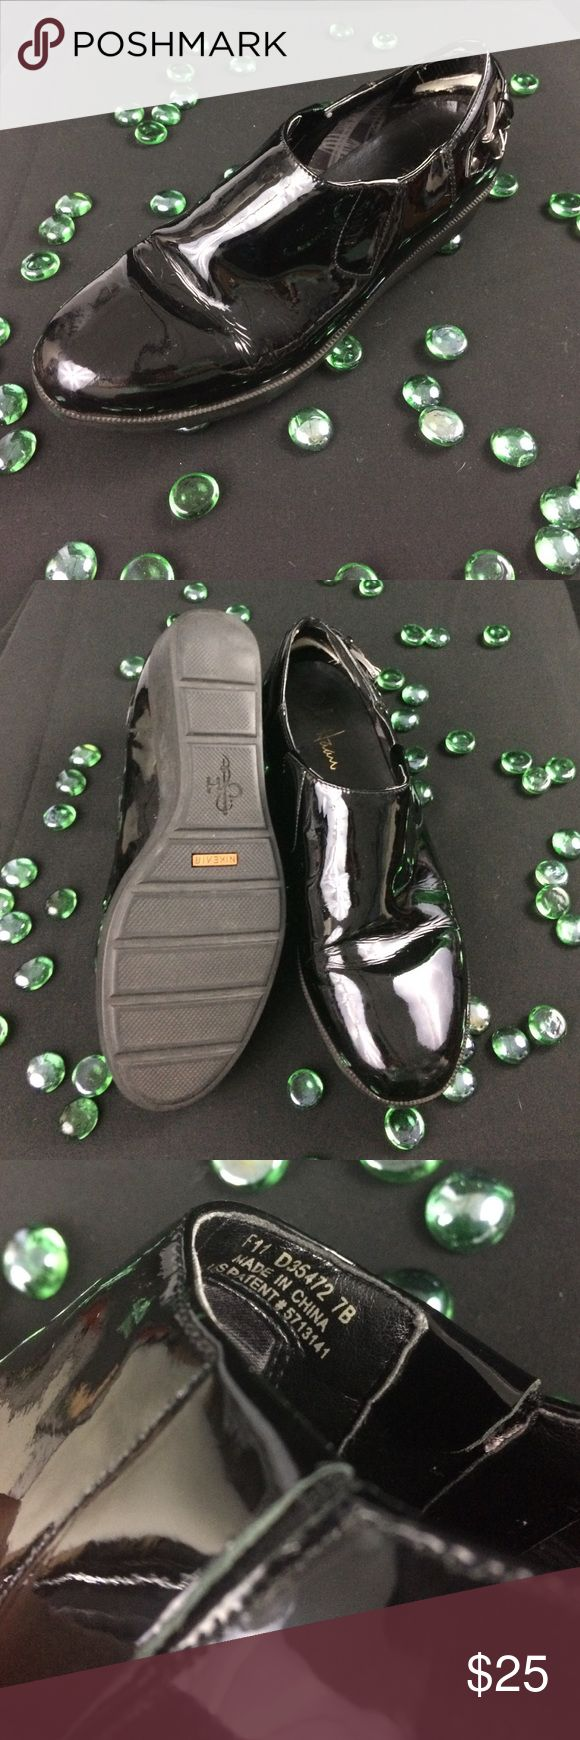 Cole Haan Women's 7B Size 7B. Shoes have some wear and scuffs. Bin40 Cole Haan Shoes Heeled Boots